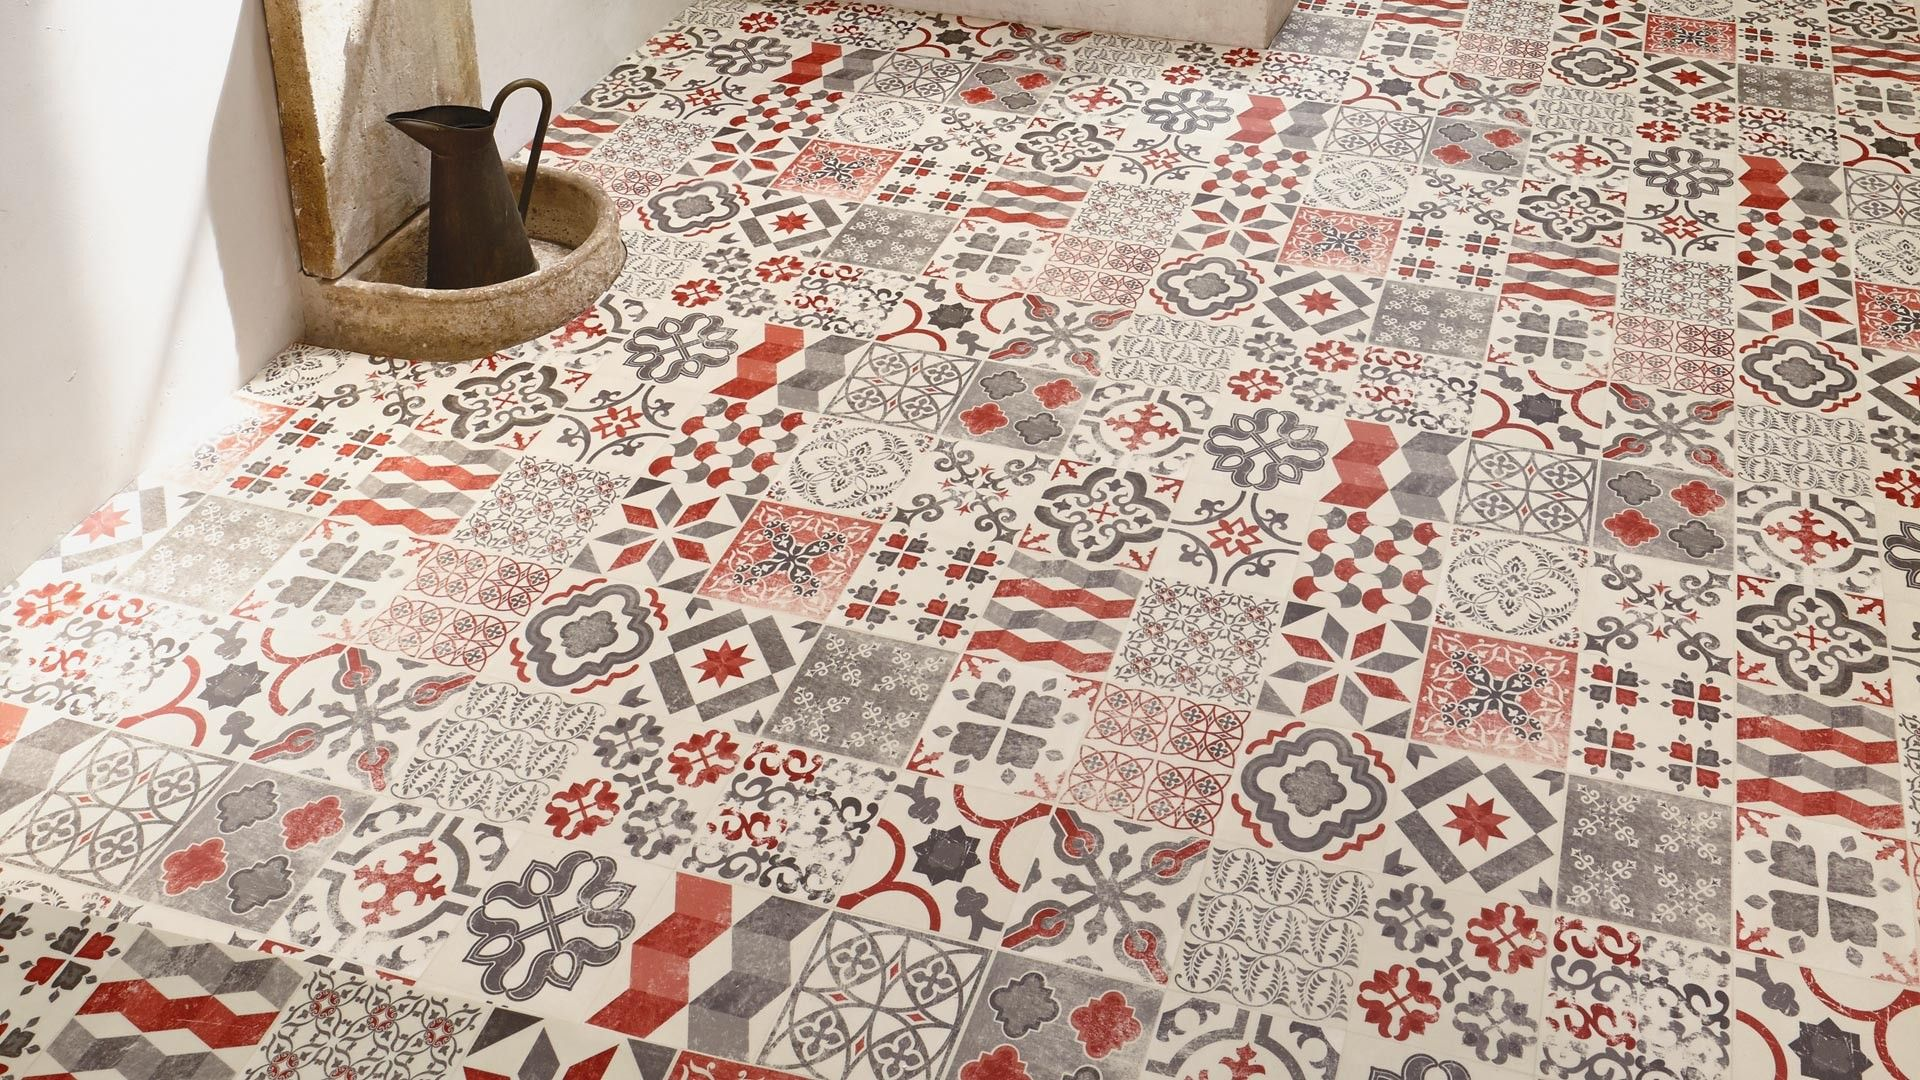 sol vinyle exclusive 240 almeria red ce carreaudeciment au style portugais tiles pinterest. Black Bedroom Furniture Sets. Home Design Ideas